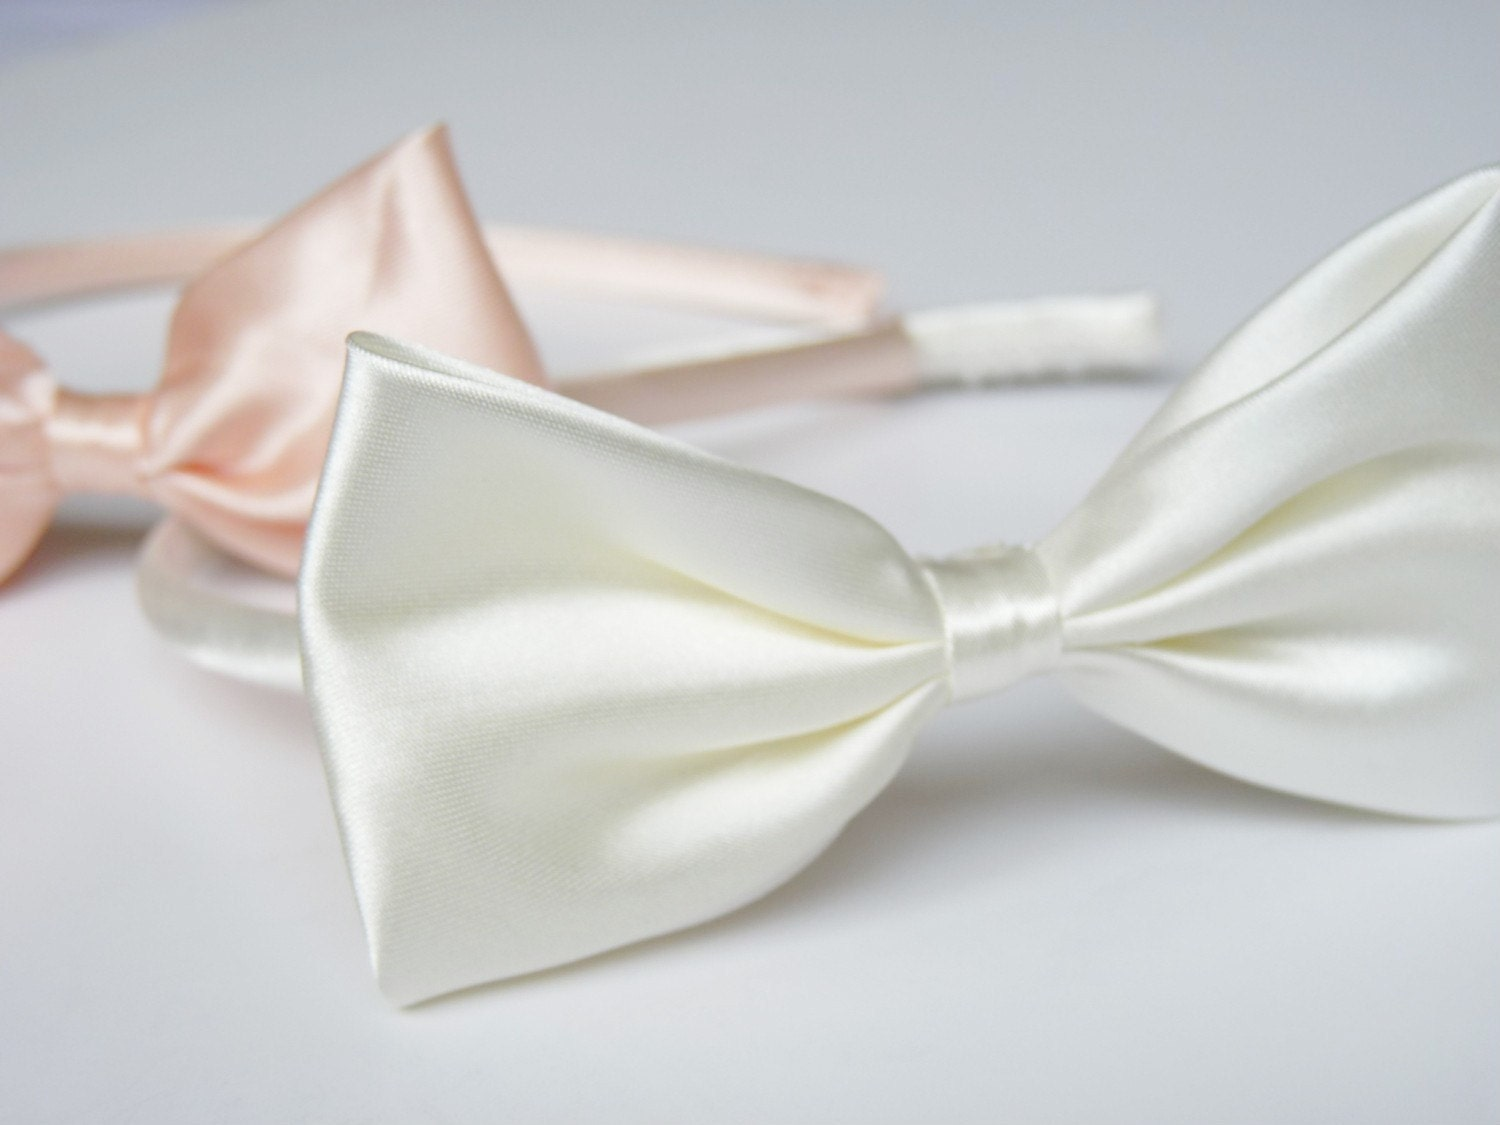 Two Satin Bow Alice Headbands in Snow White and Peach Color